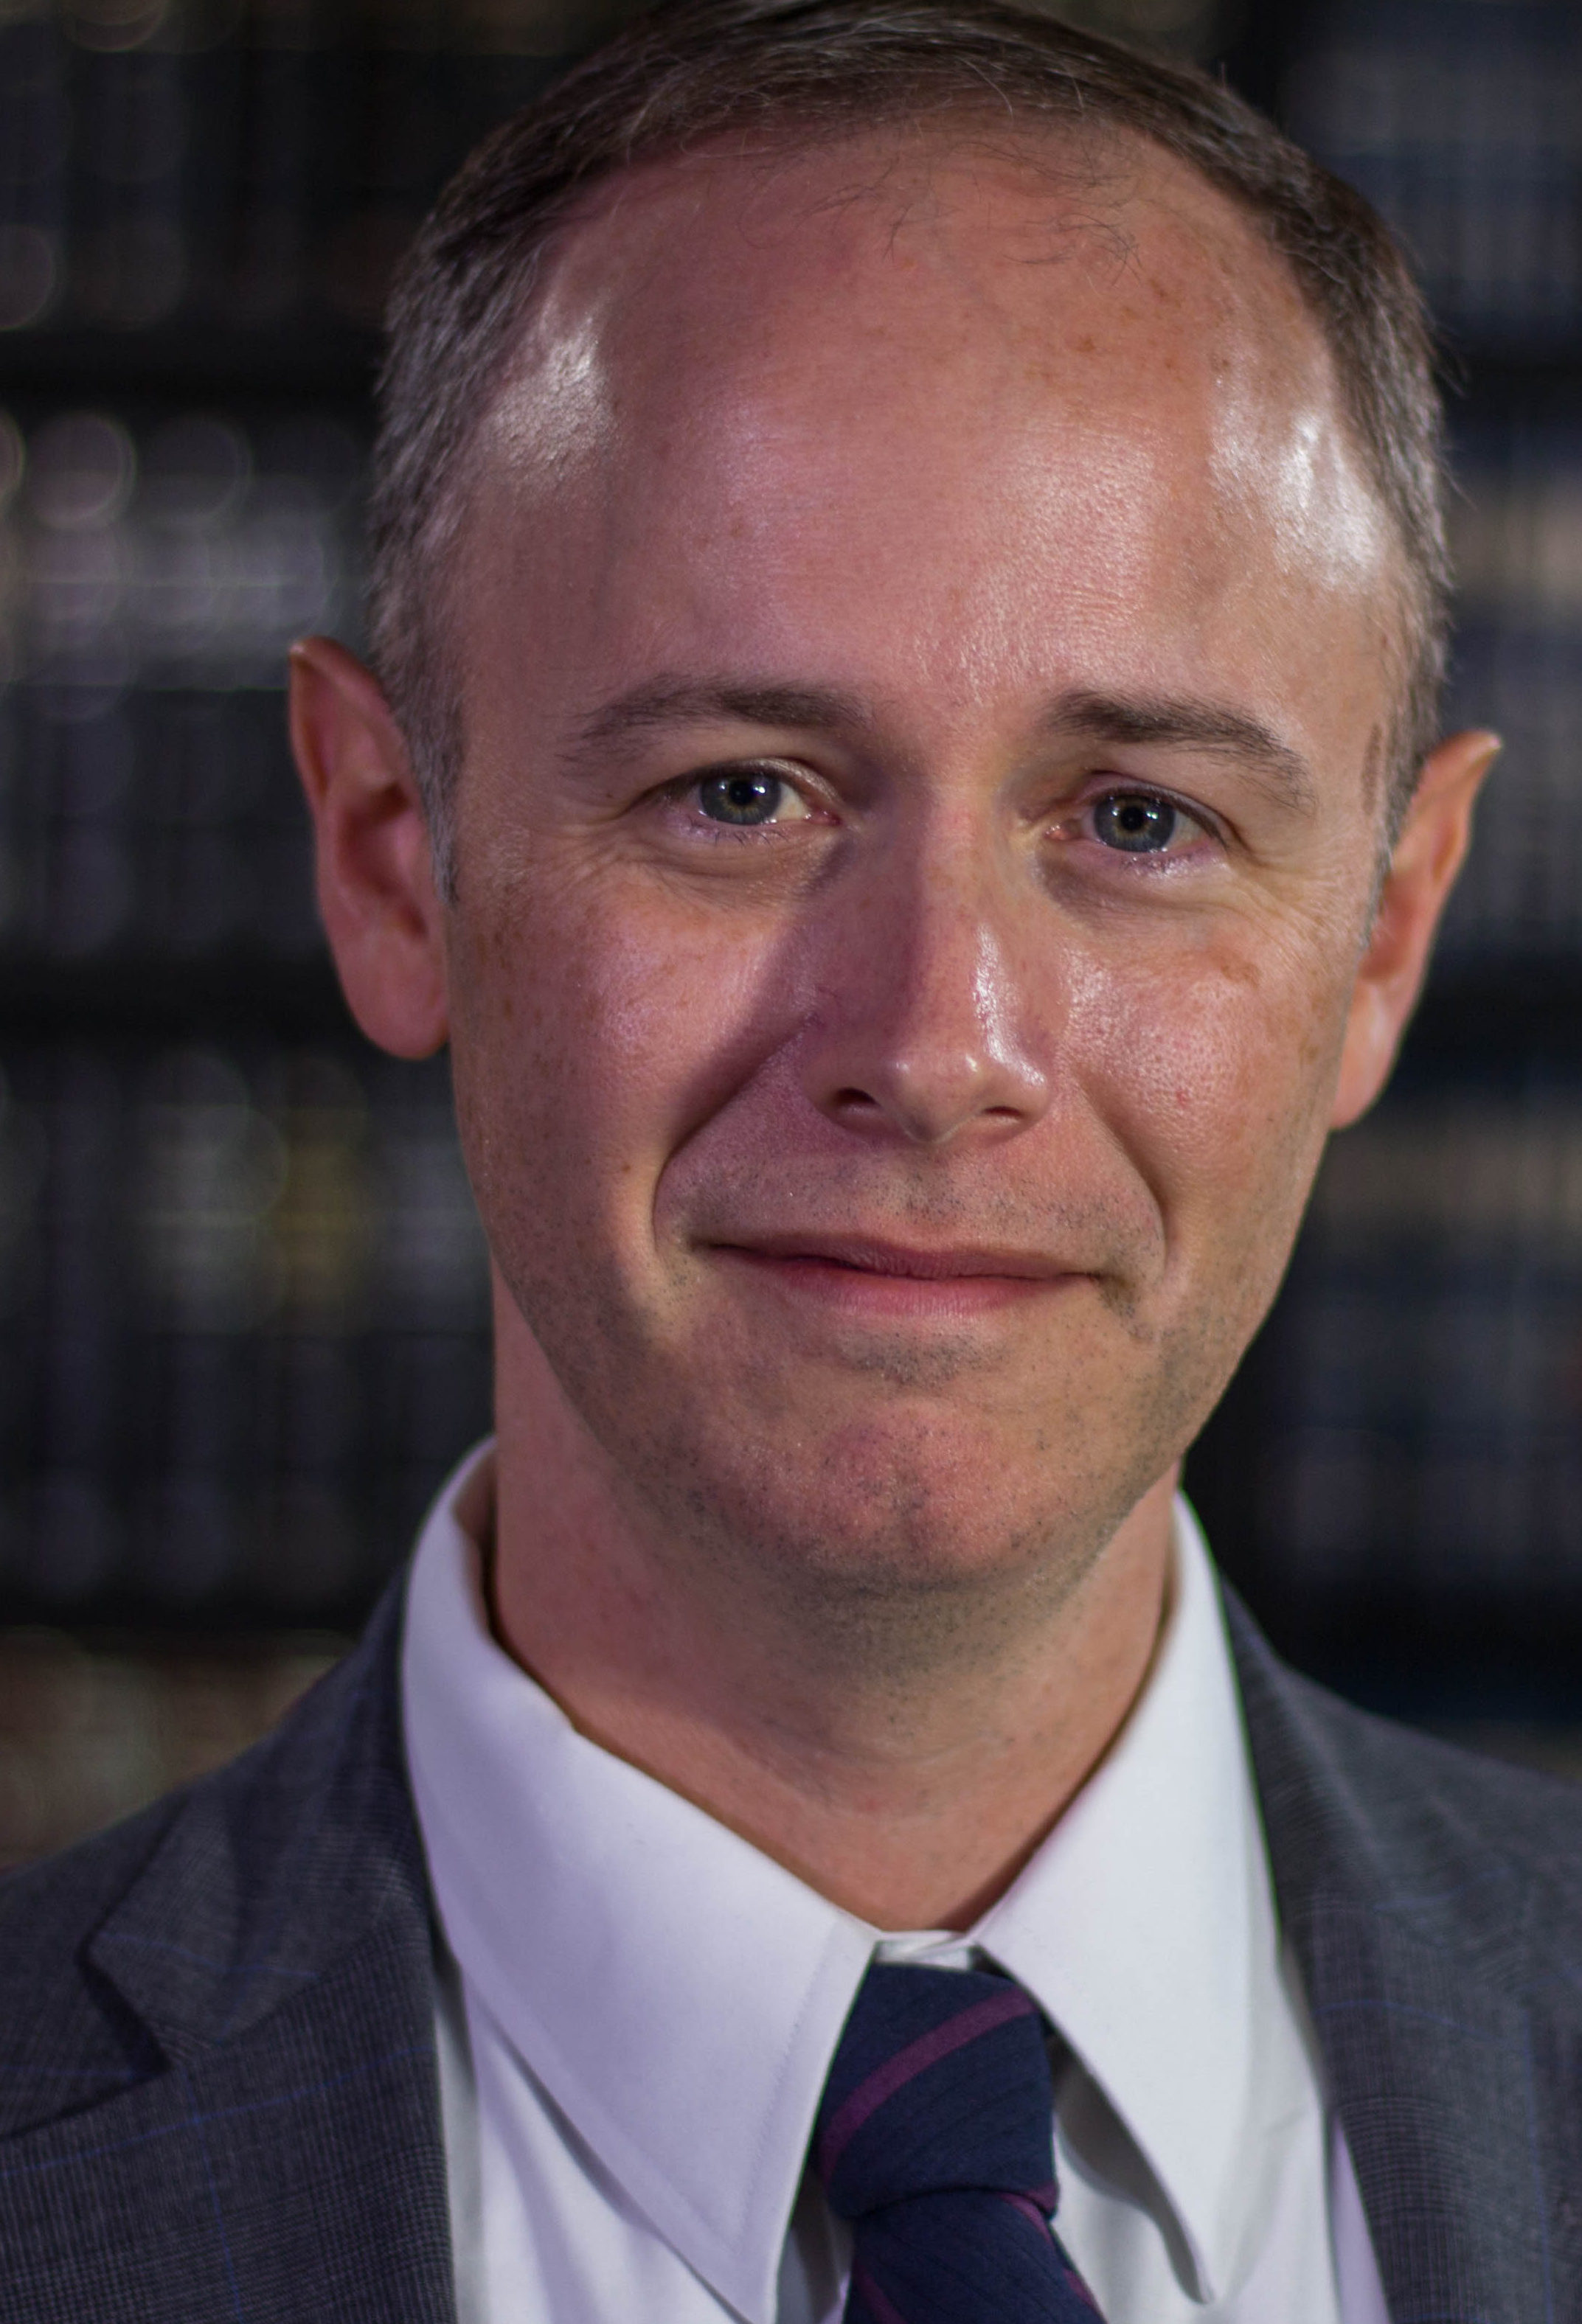 Image of William Messenger (National Right to Work Legal Defense Foundation)